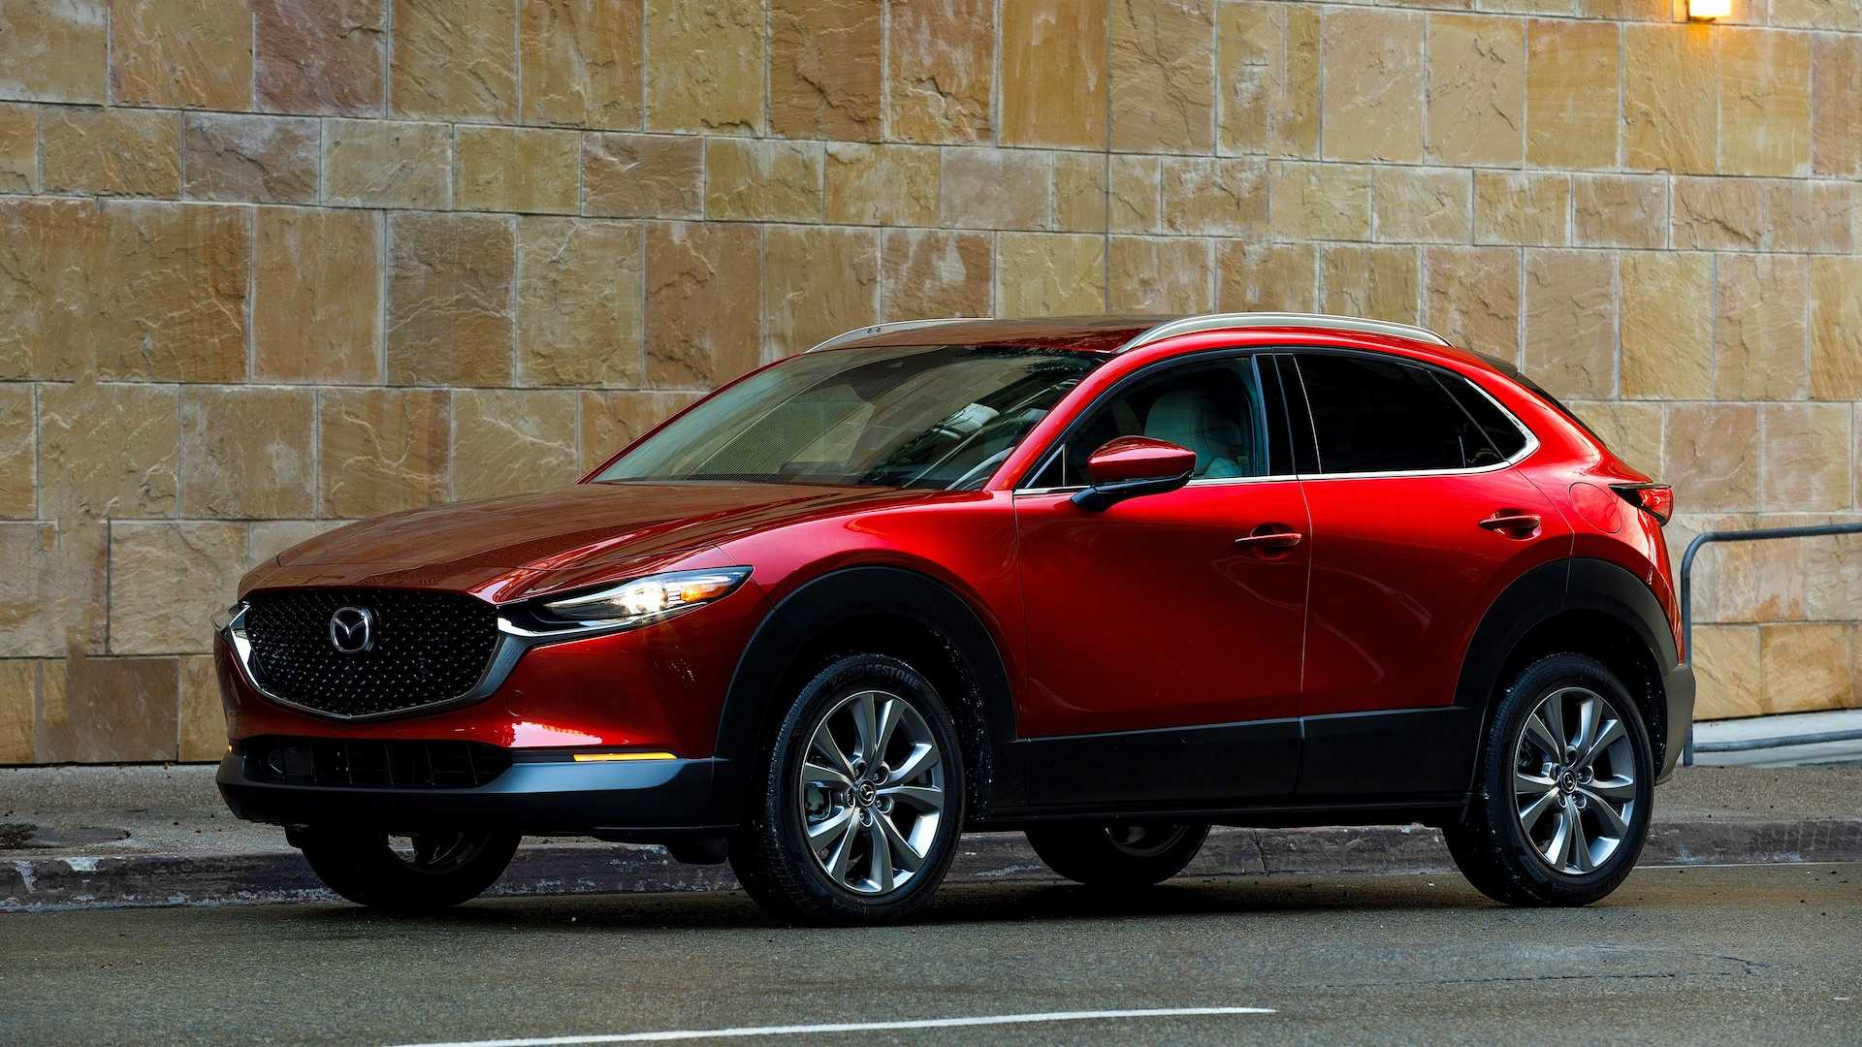 8 Mazda CX-8 First Drive Review: Subcompact No Longer Means Subpar